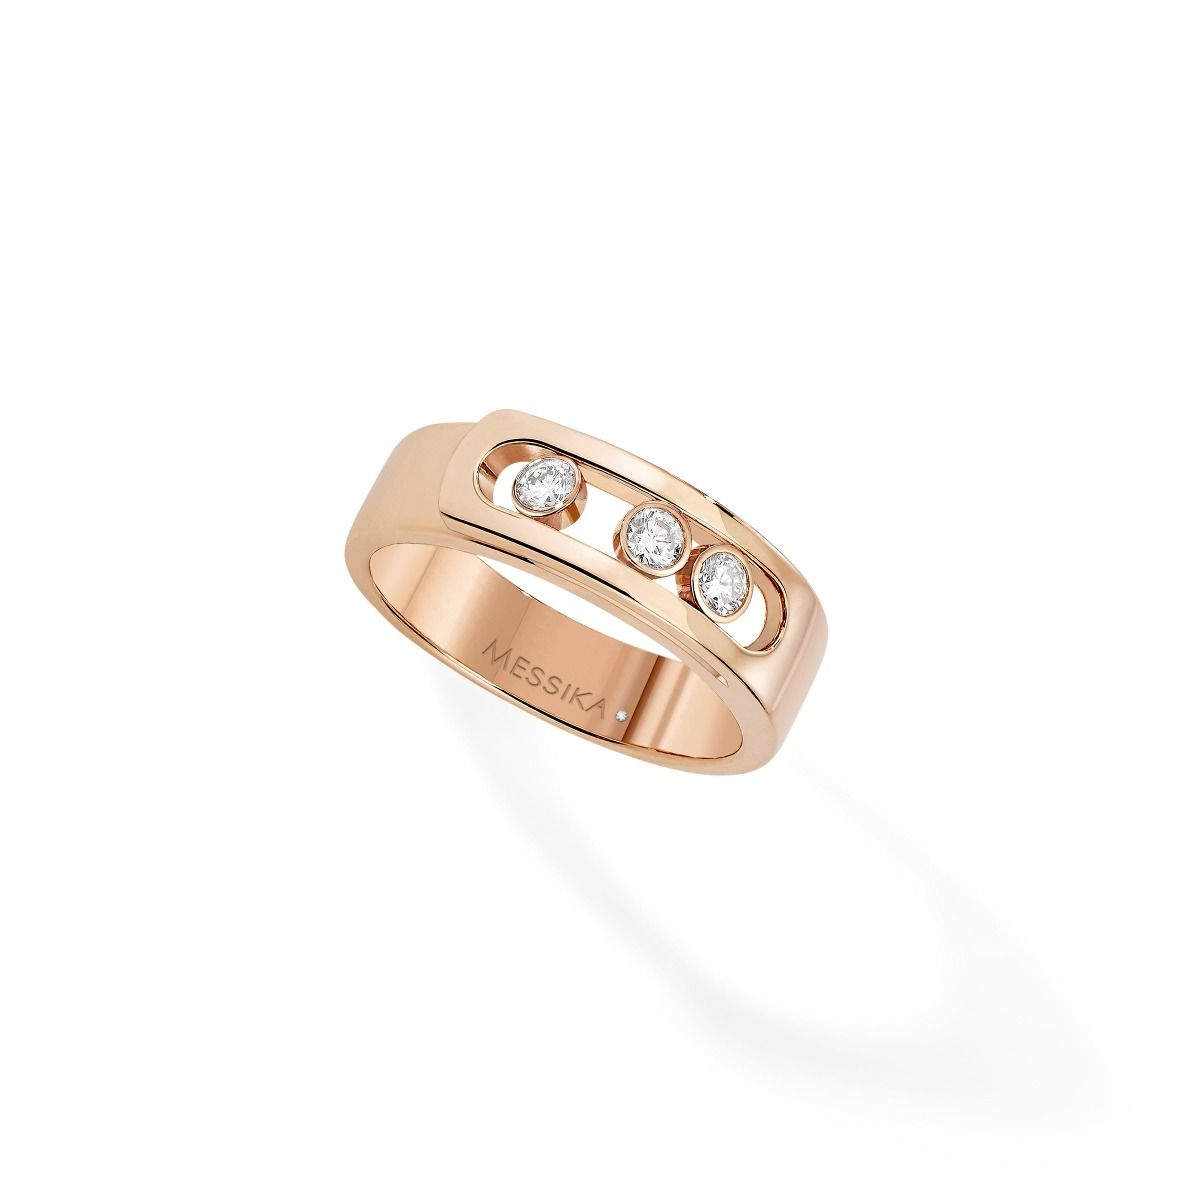 Move Noa Ring - Pink Gold